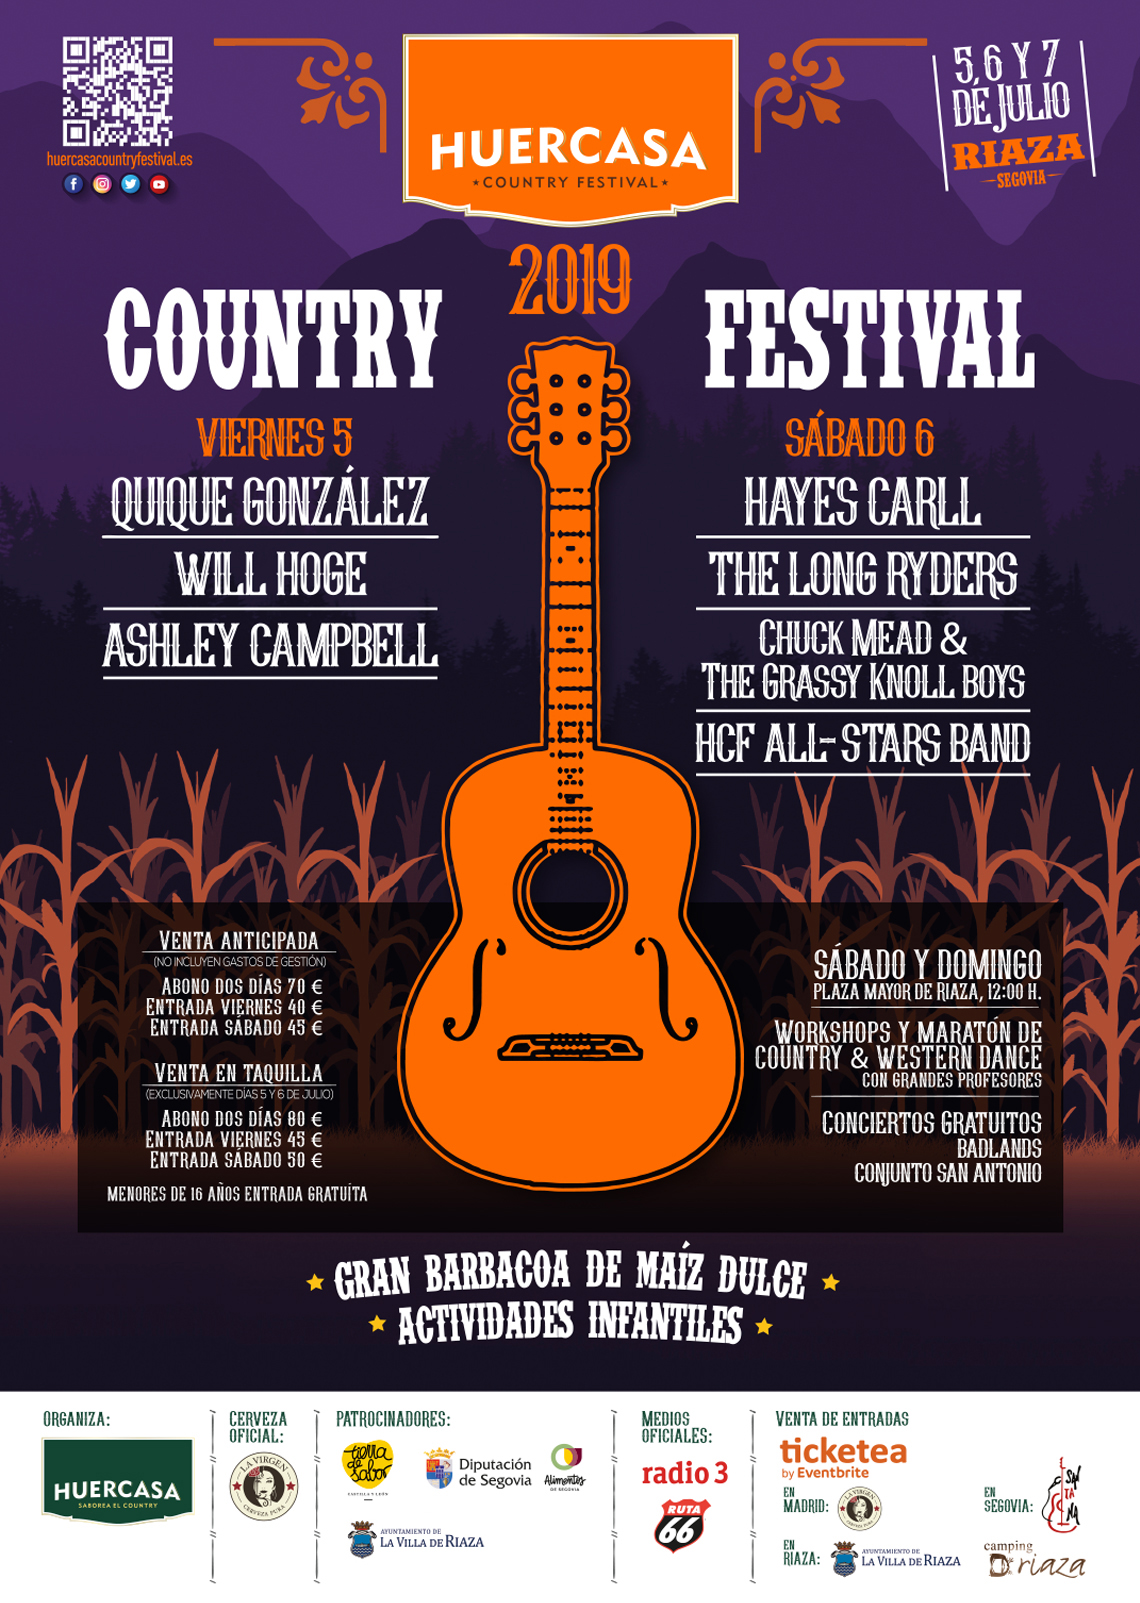 Huercasa Country Festival 2019